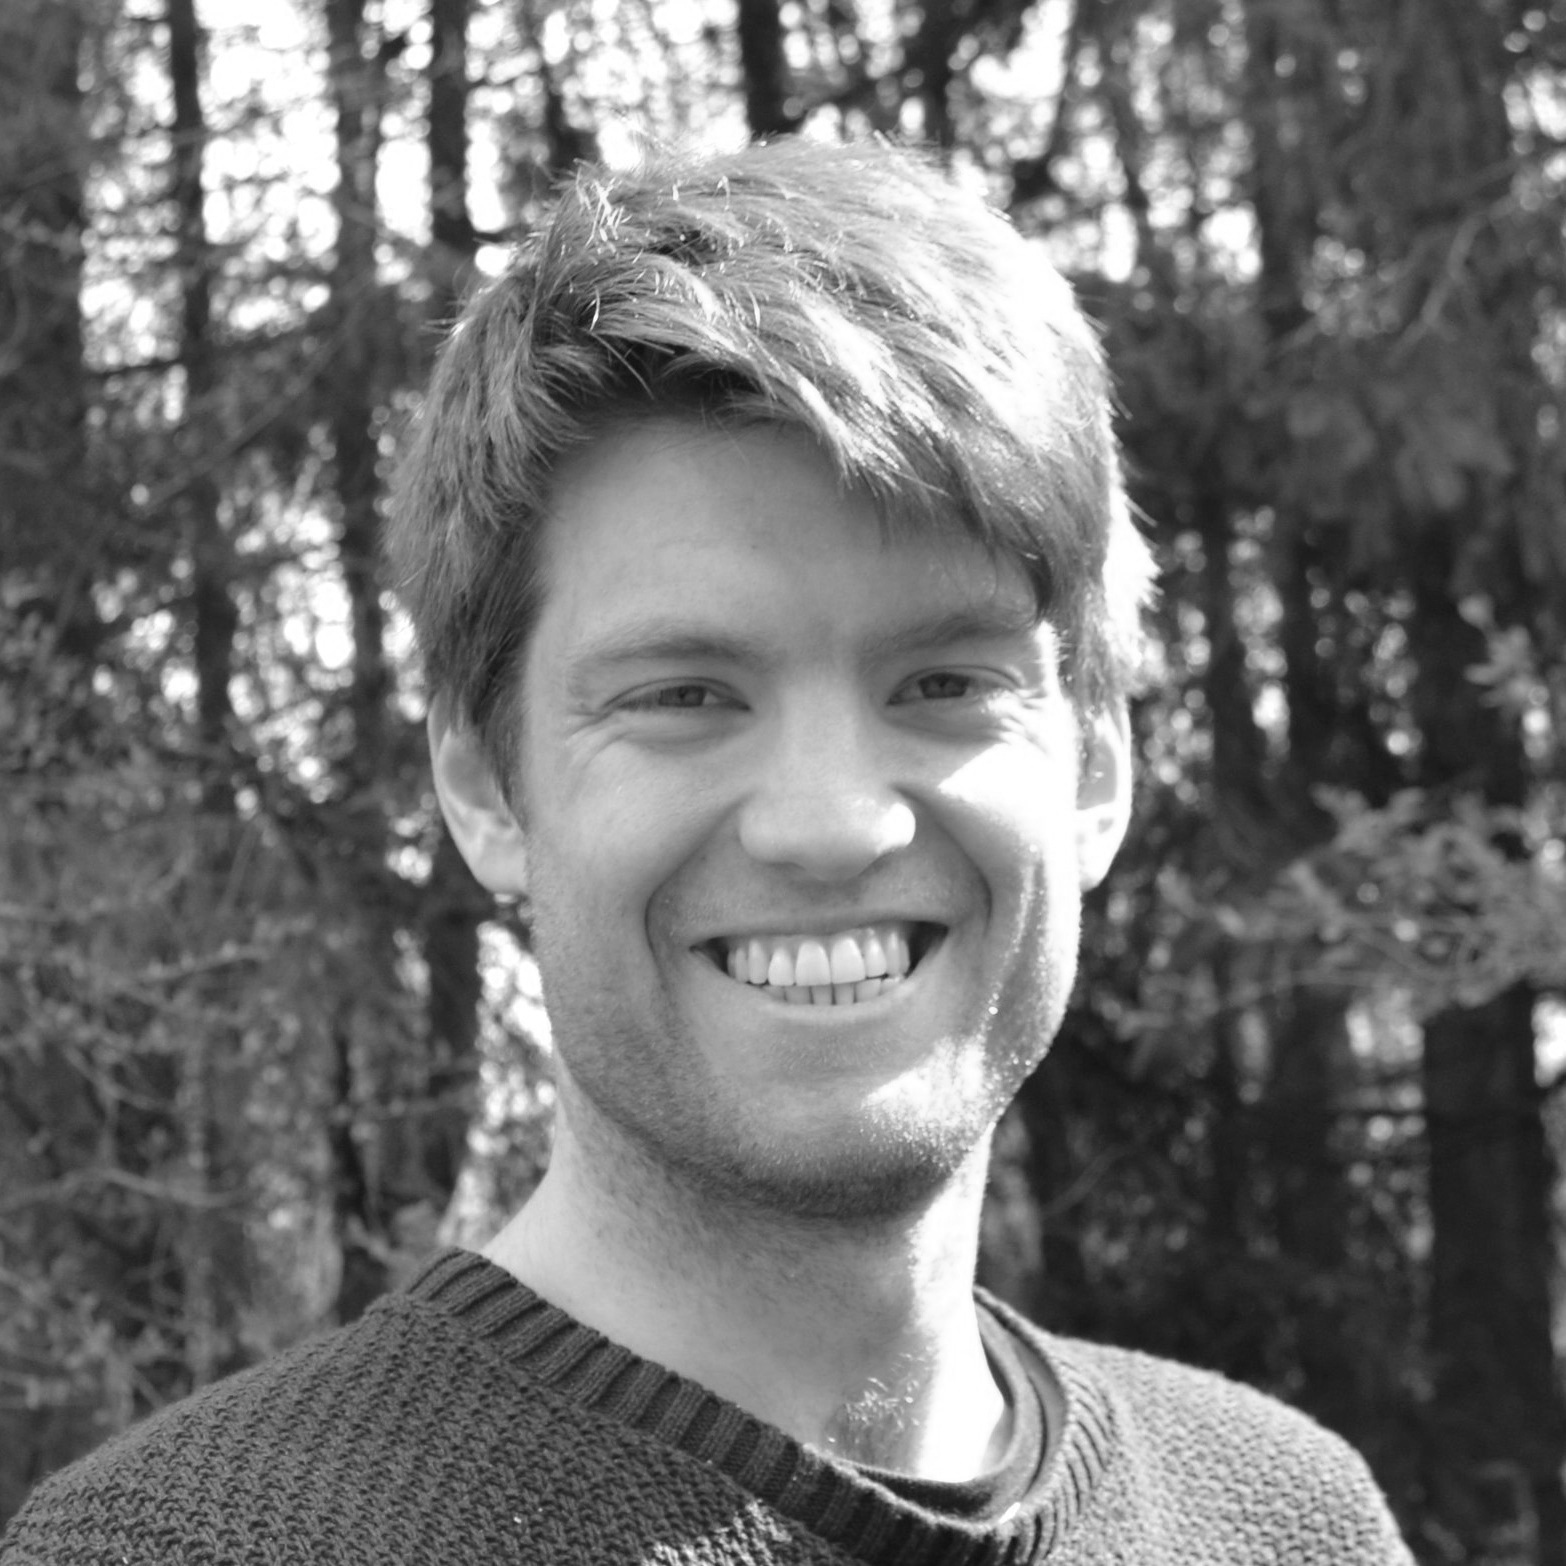 Chris van Diemen - CO-FOUNDER & DATA SCIENTIST